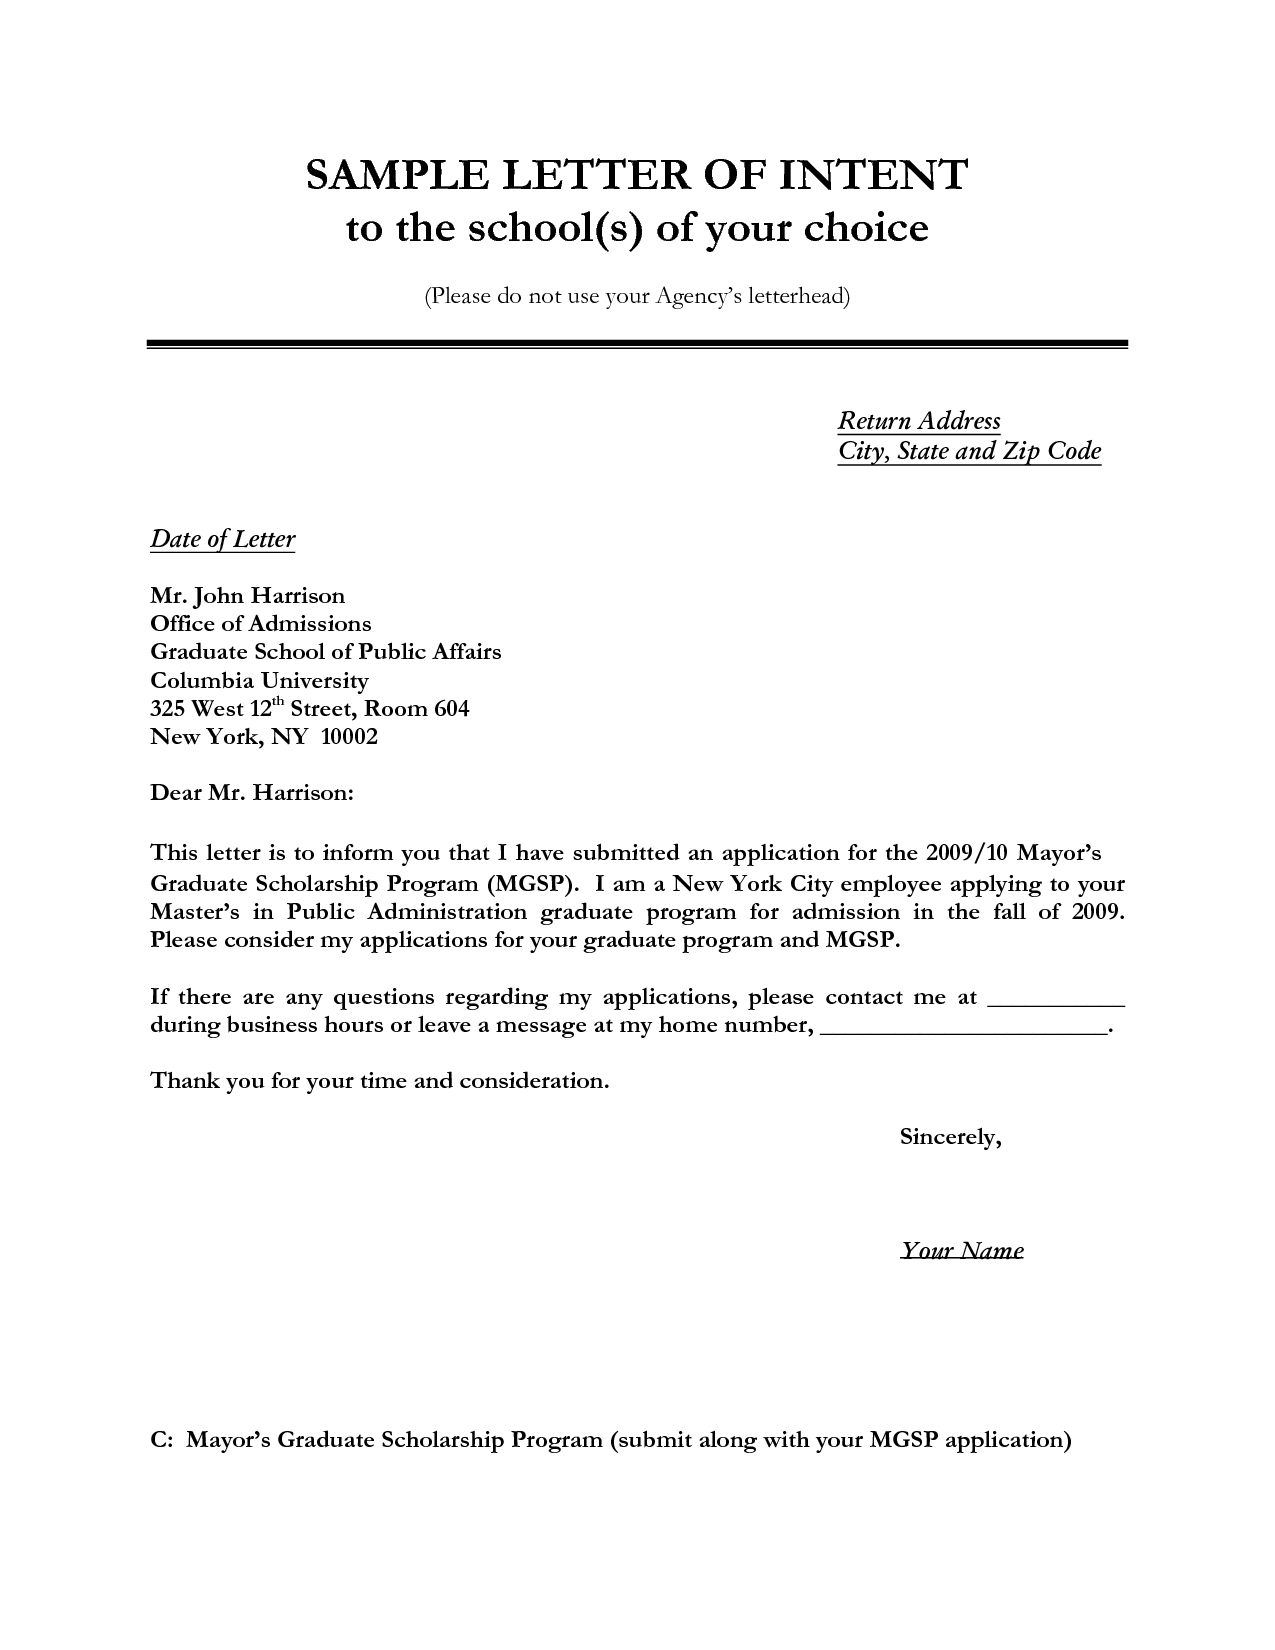 Intent to Lien Letter Template - Letter Of Intent Sample